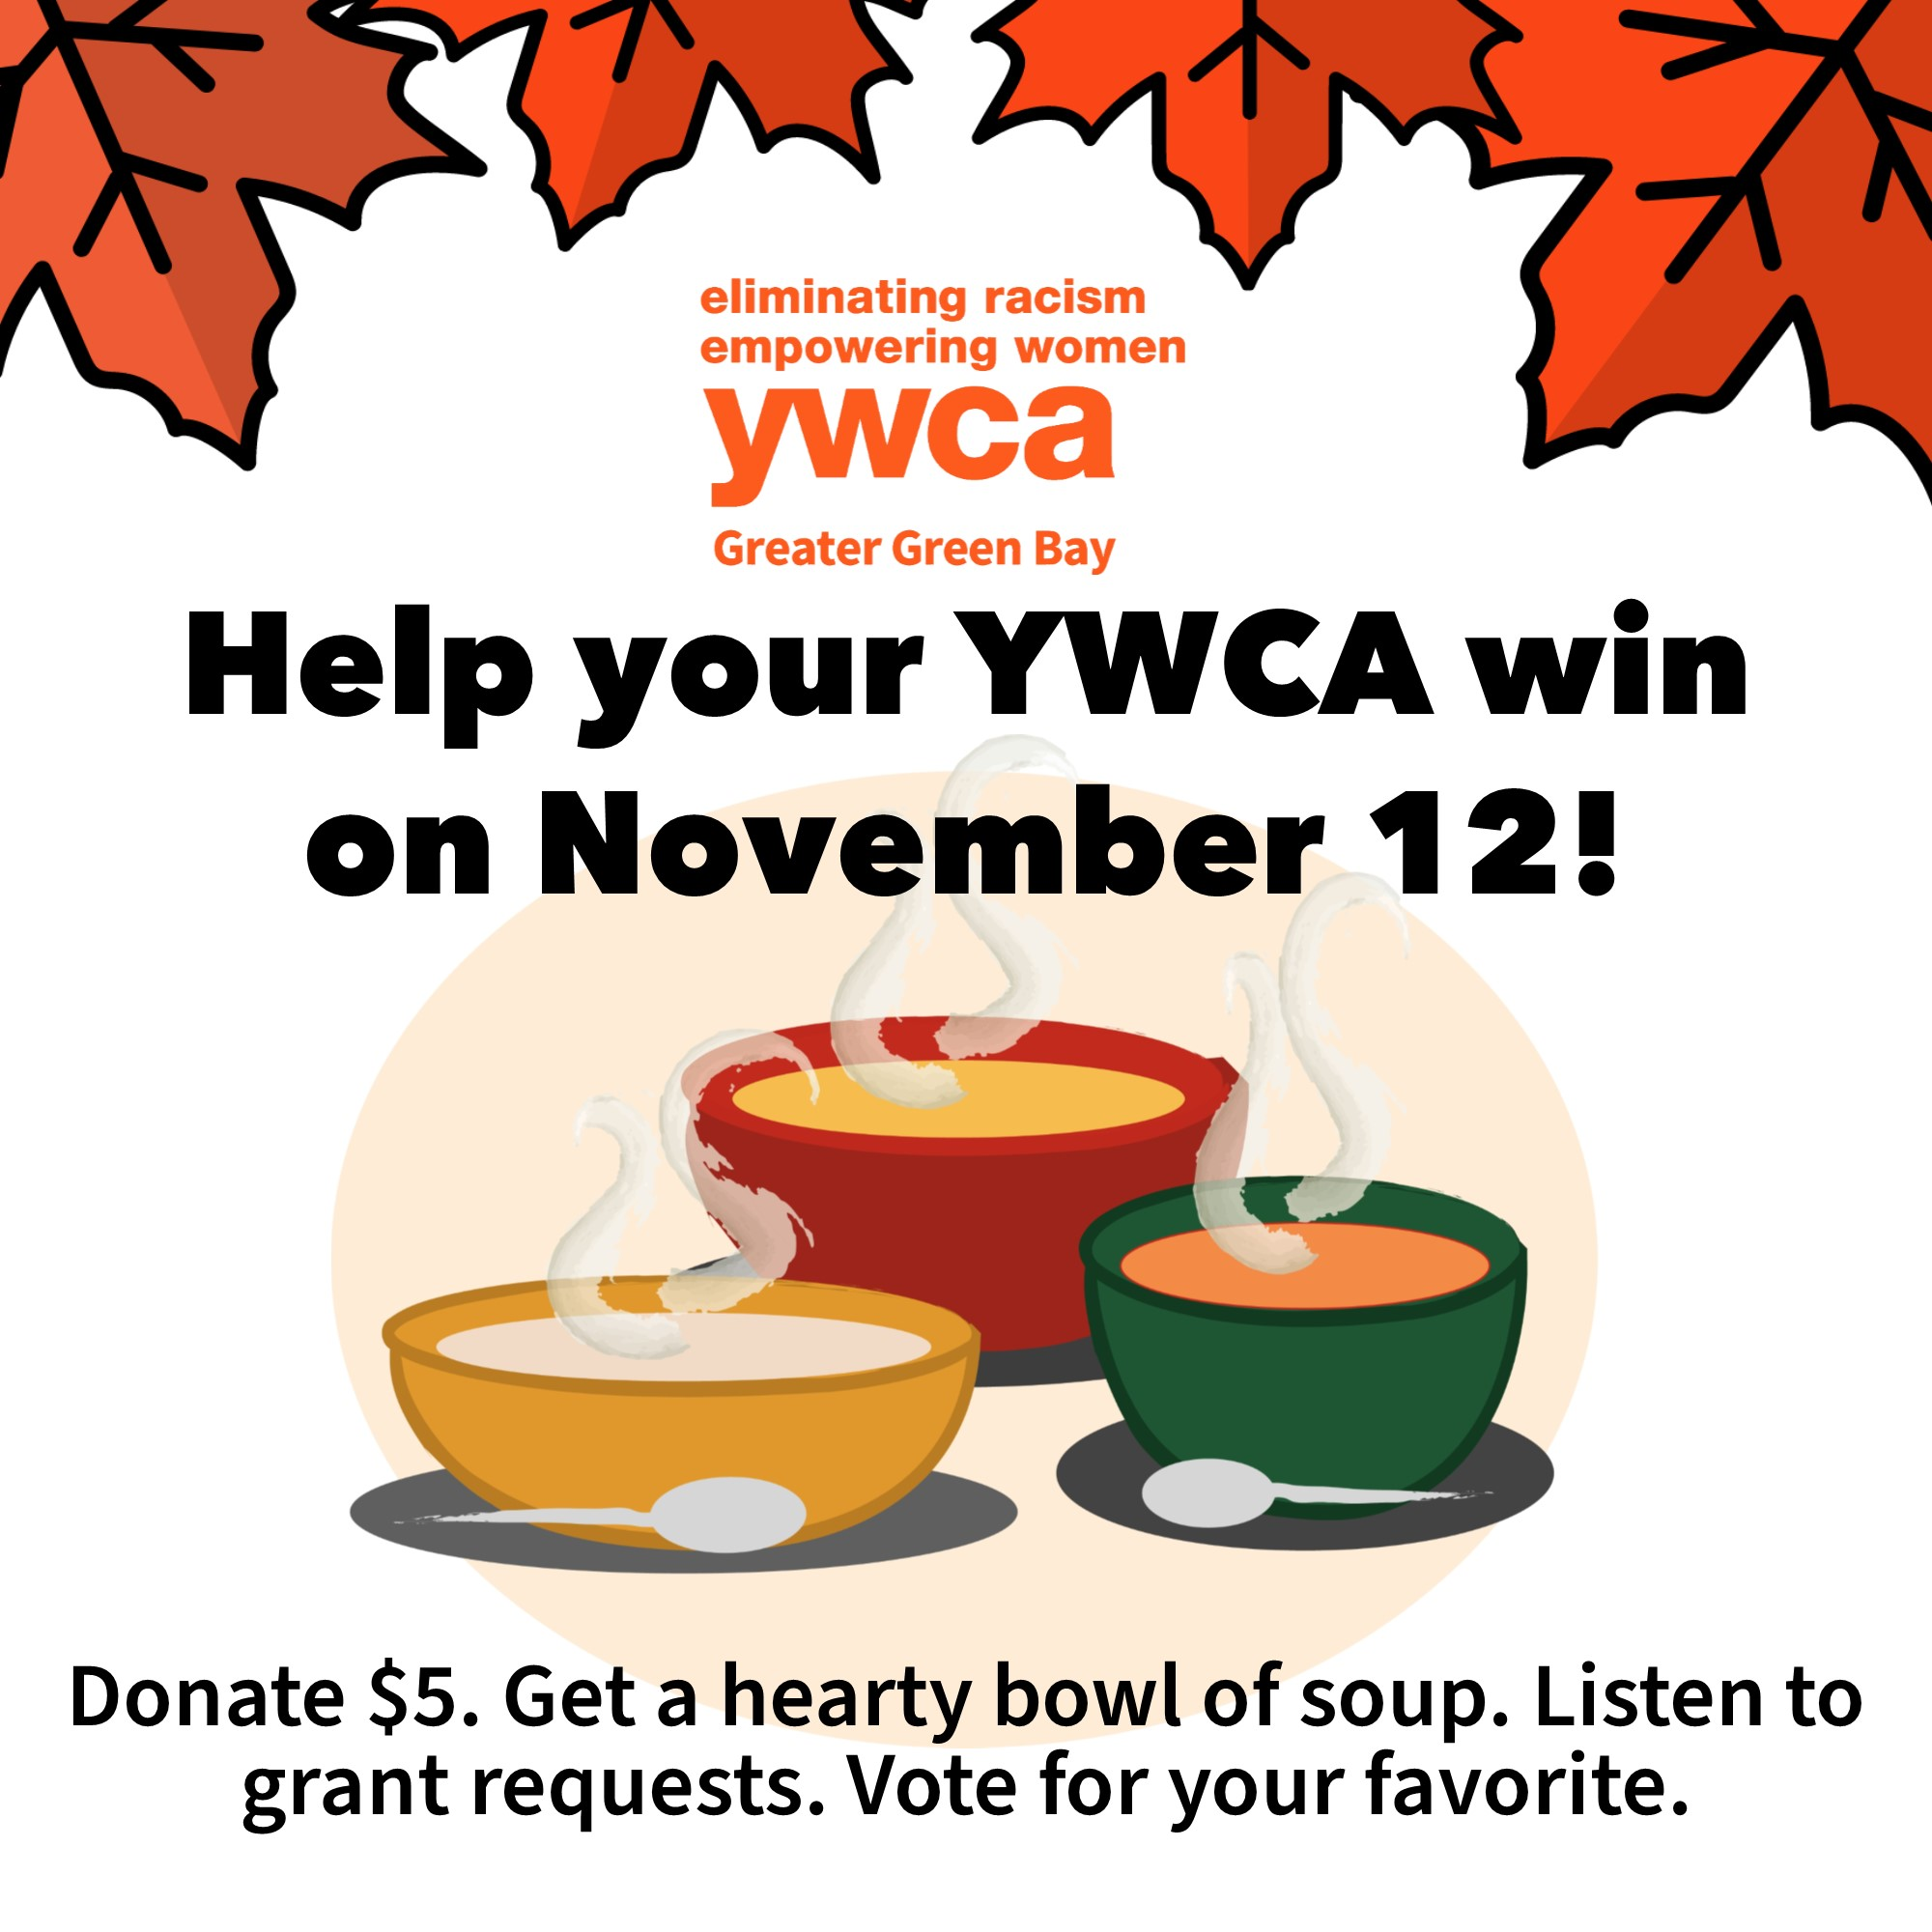 Help your YWCA win on November 12. Donate $5. Get a hearty bowl of soup. Listen to grant requests. Vote for your favorite.